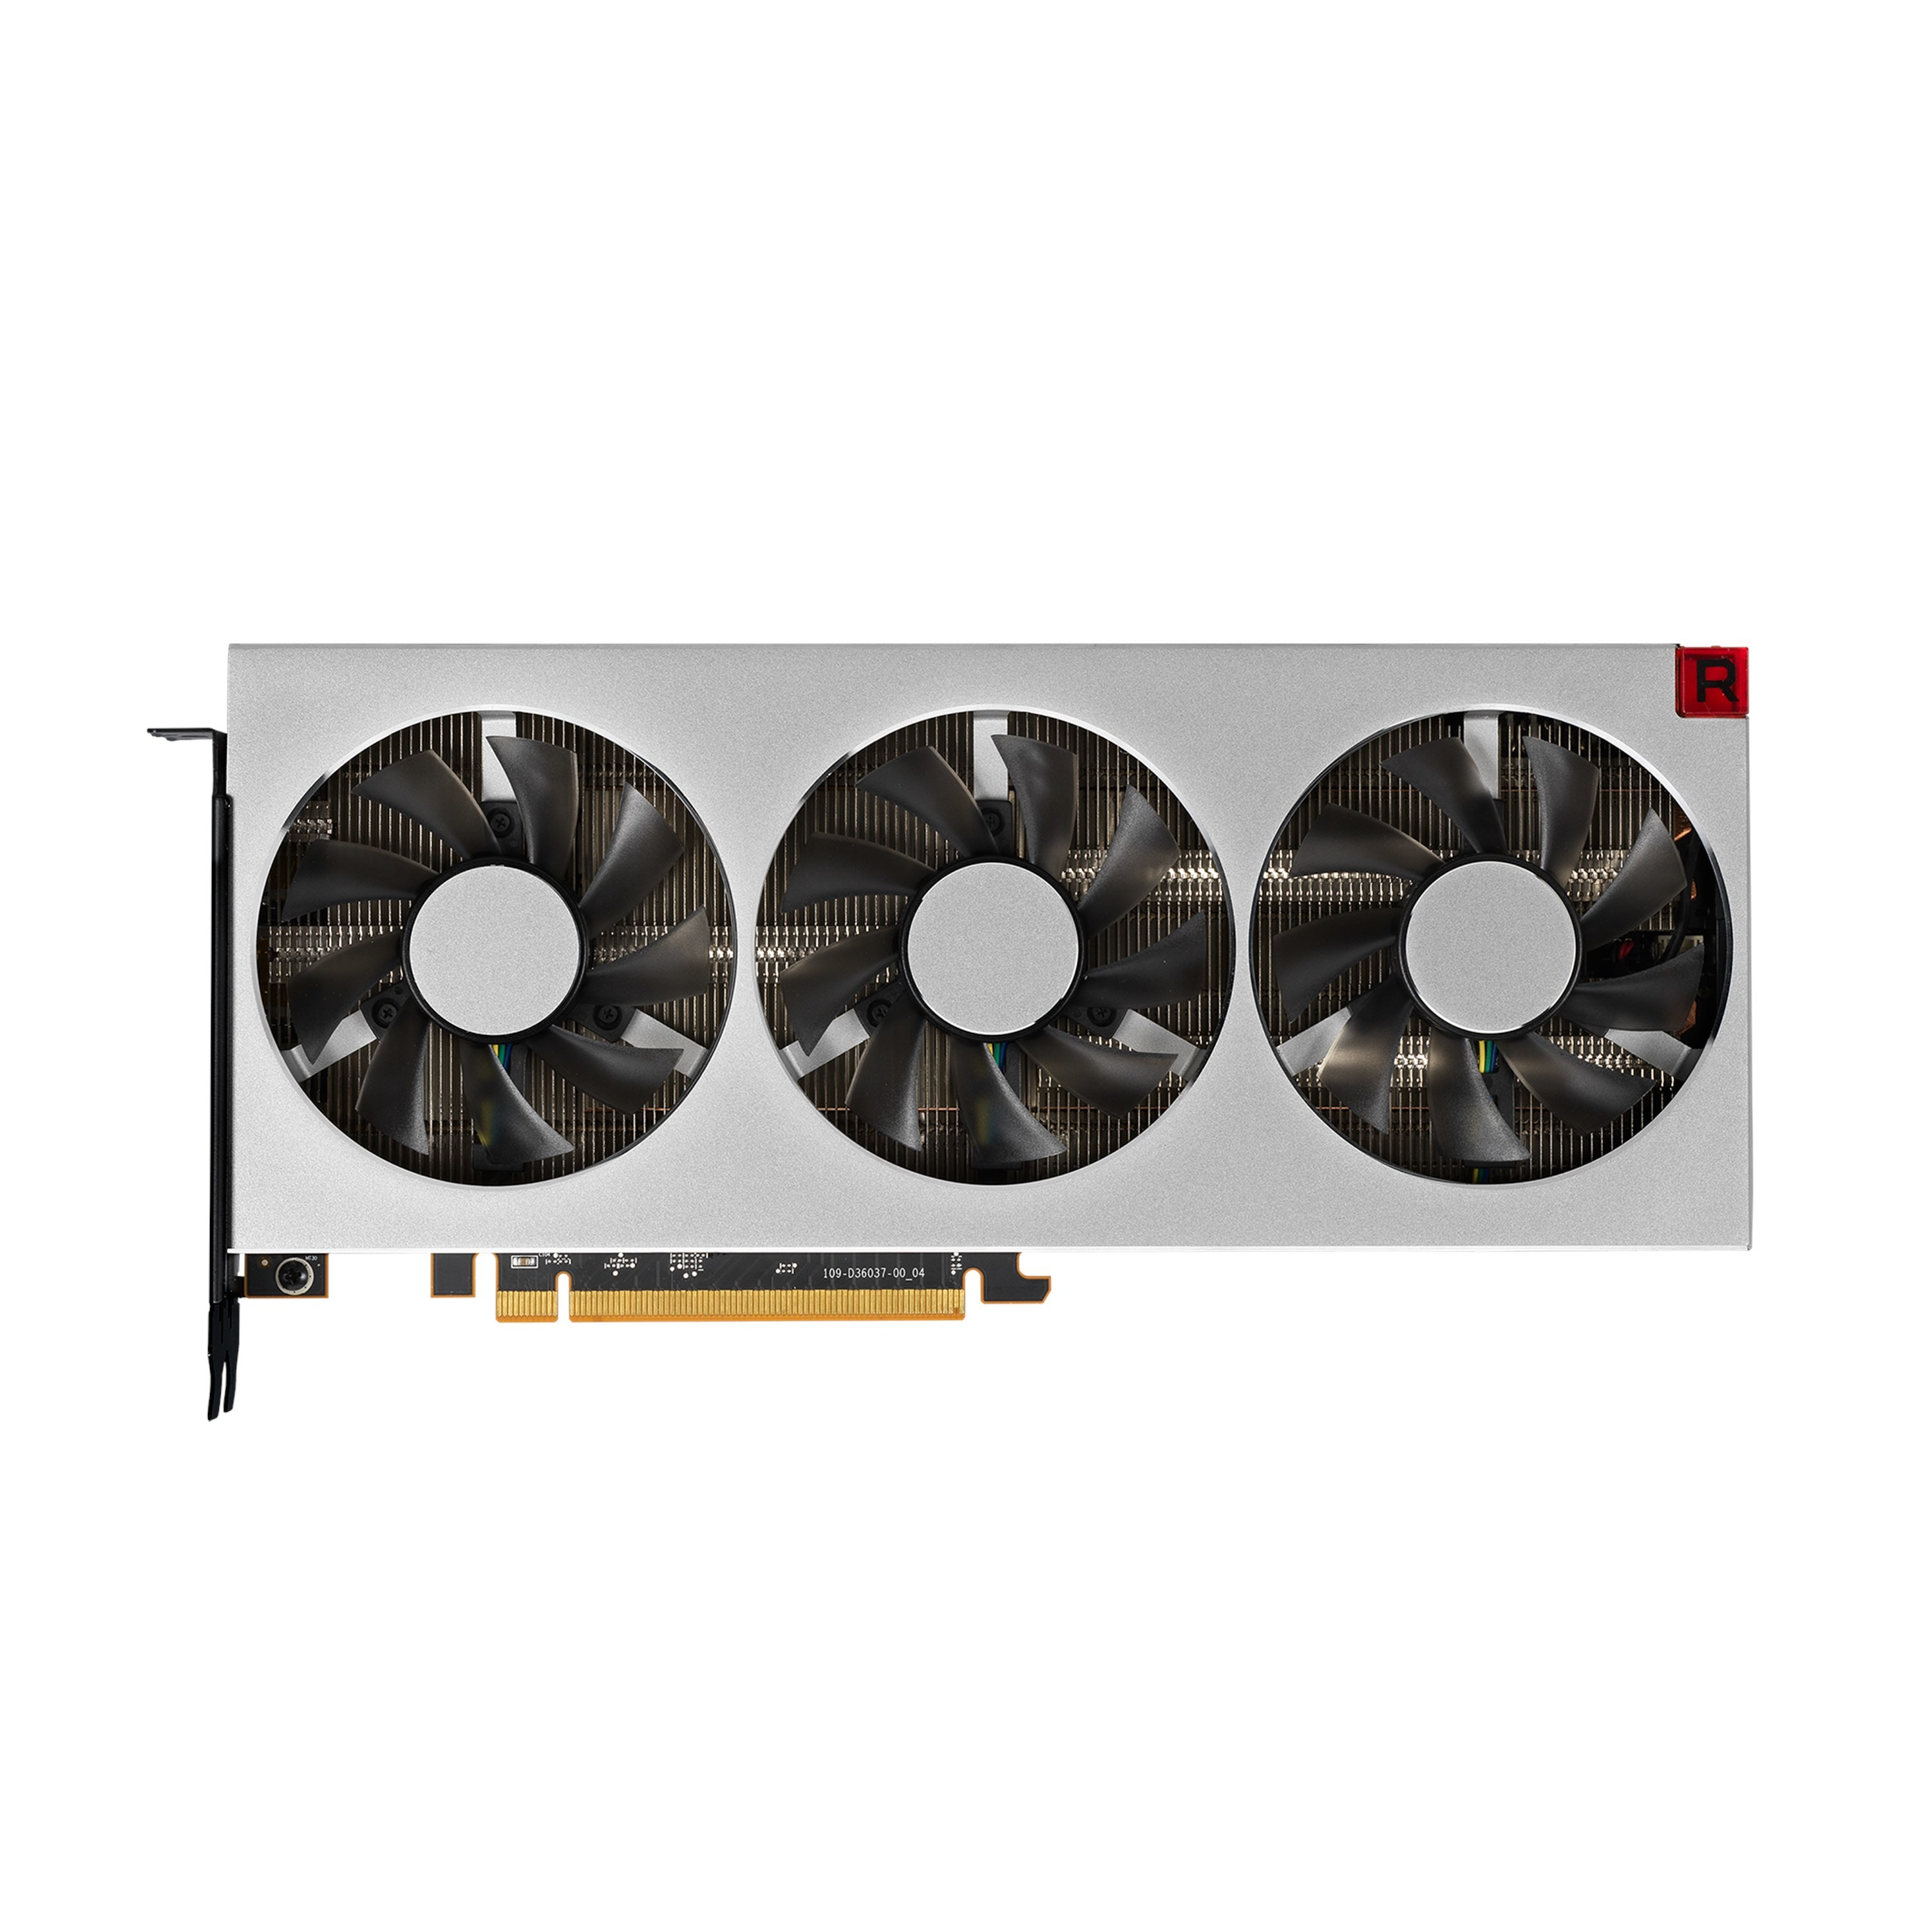 VGA PowerColor RADEON VII-16G, AMD Radeon VII, 16GB, do 1750MHz, 24mj (90YV0CY0-U0NA00)